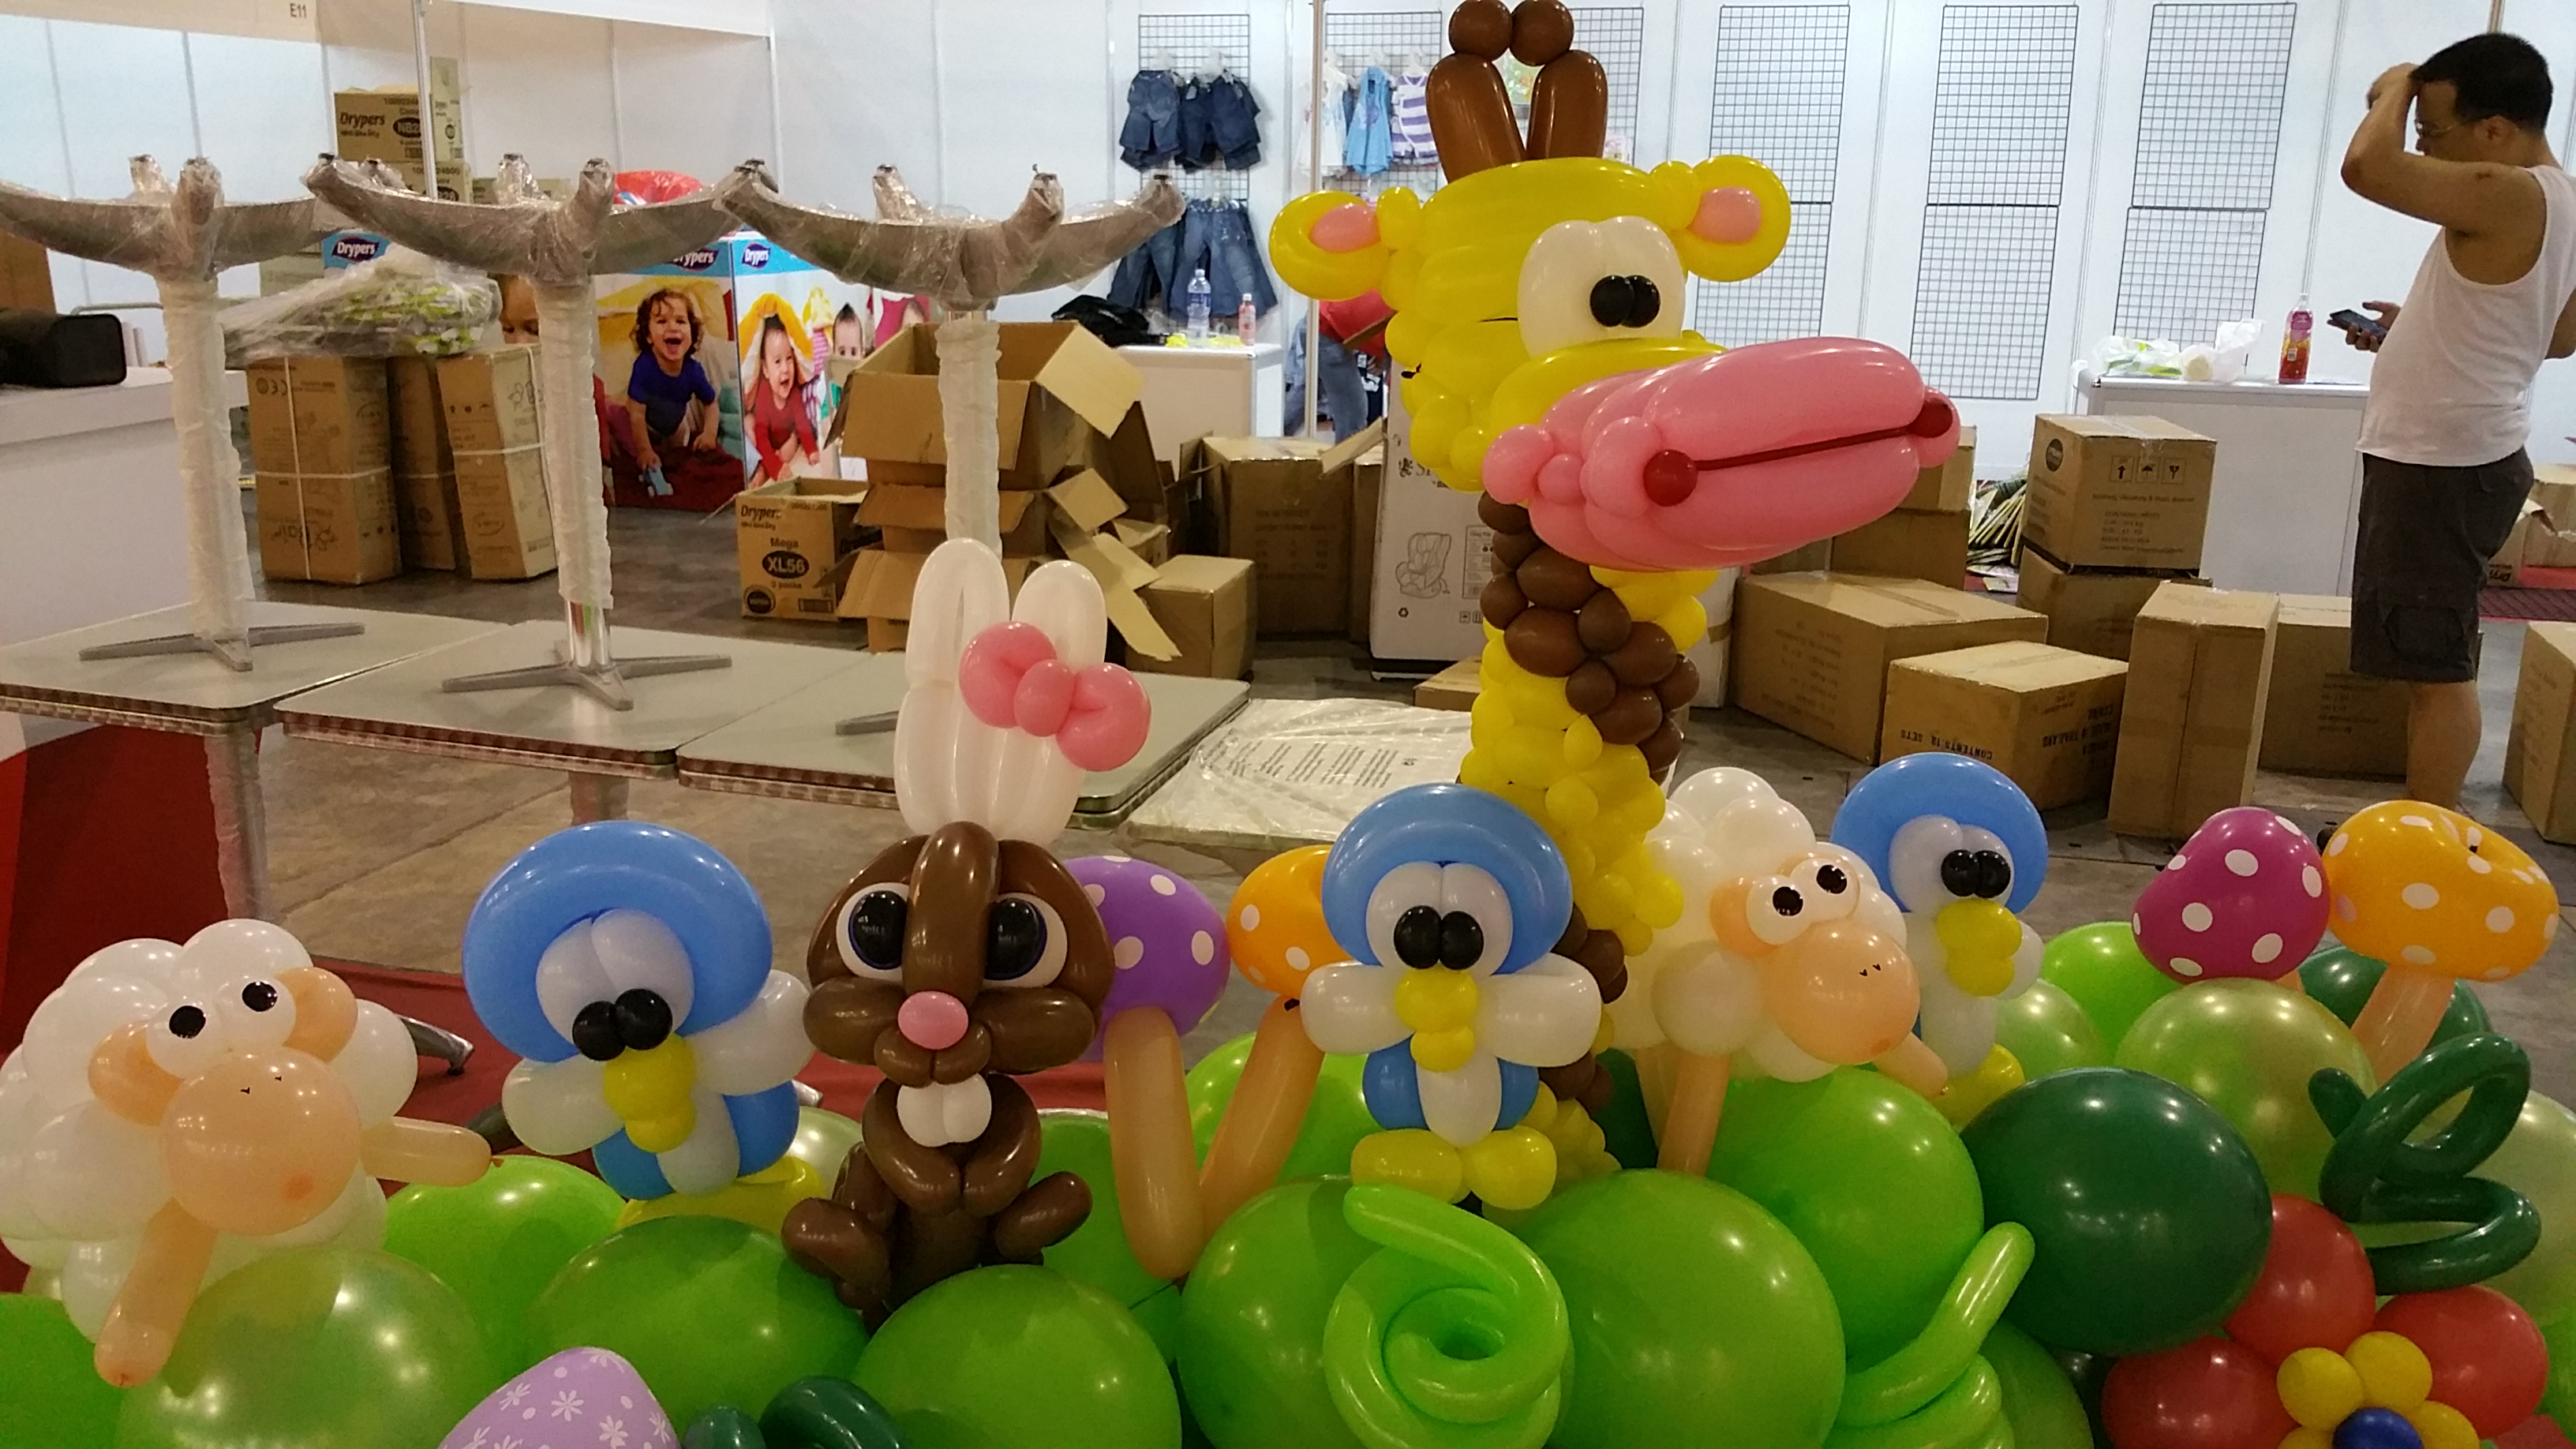 , Animal themed balloon backdrop design for my client!, Singapore Balloon Decoration Services - Balloon Workshop and Balloon Sculpting